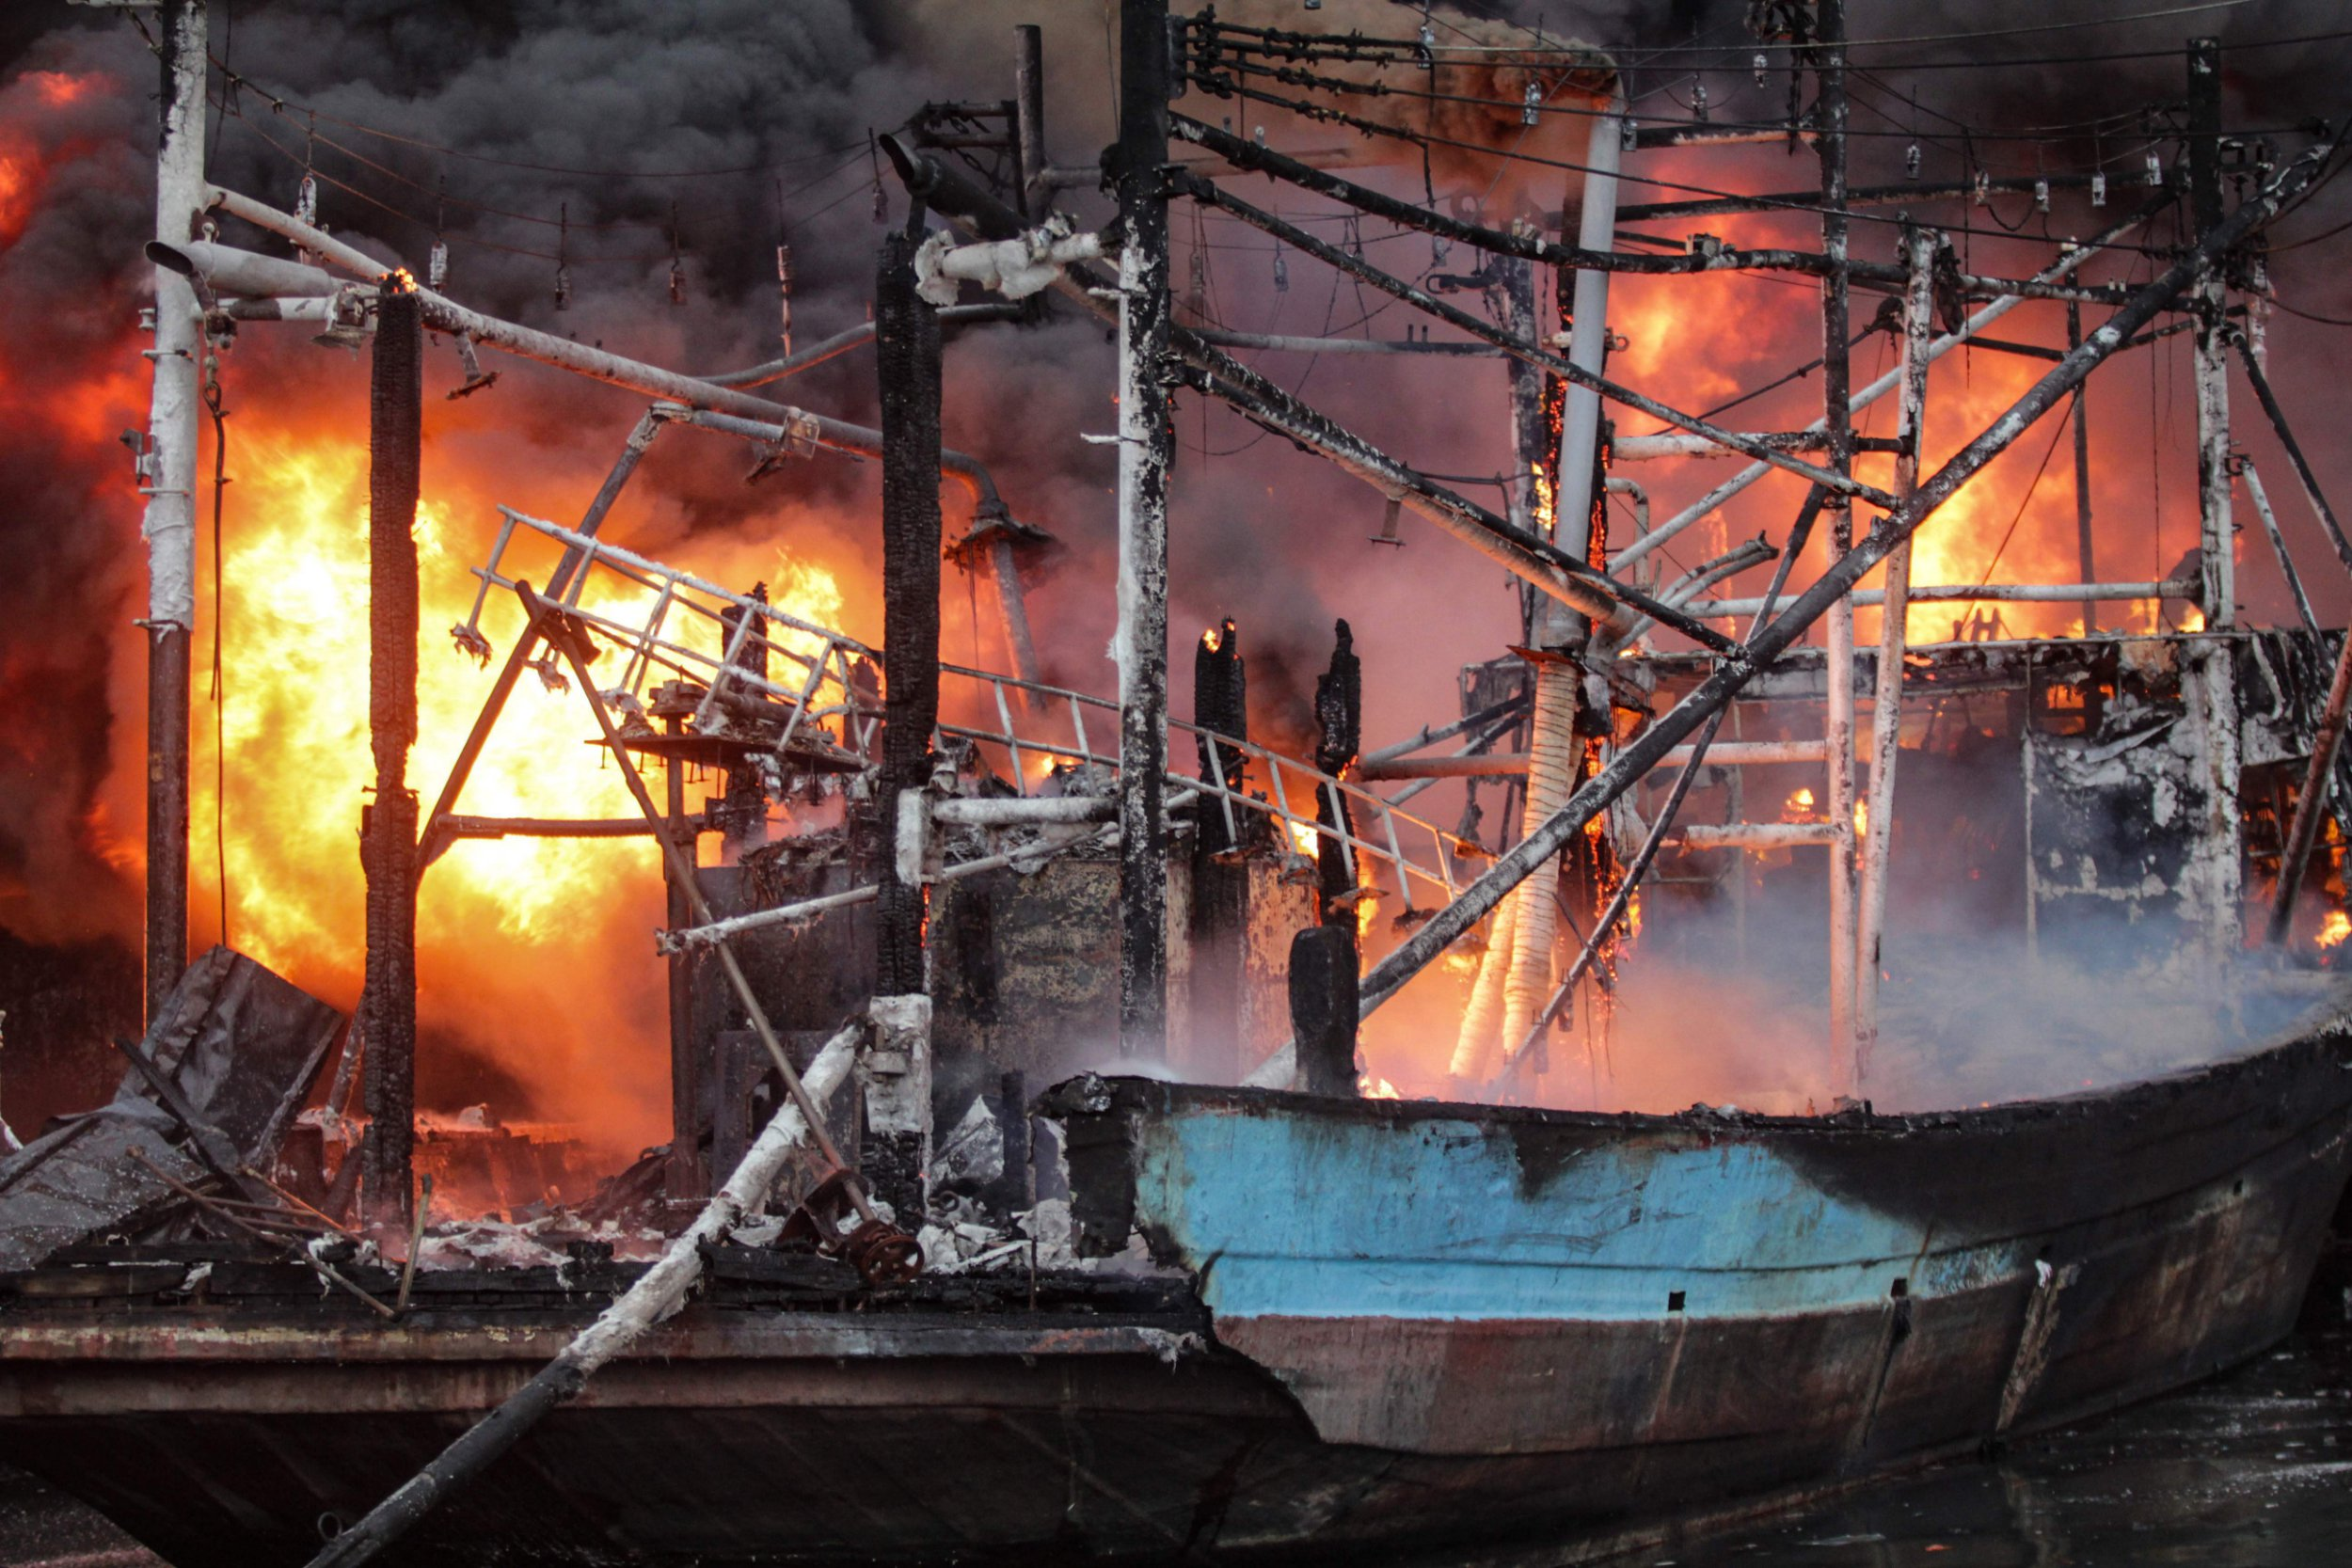 Flames rise from burning wooden boats during a fire at the Muara Baru port in Jakarta on February 23, 2019. (Photo by KRISNADA / AFP)KRISNADA/AFP/Getty Images